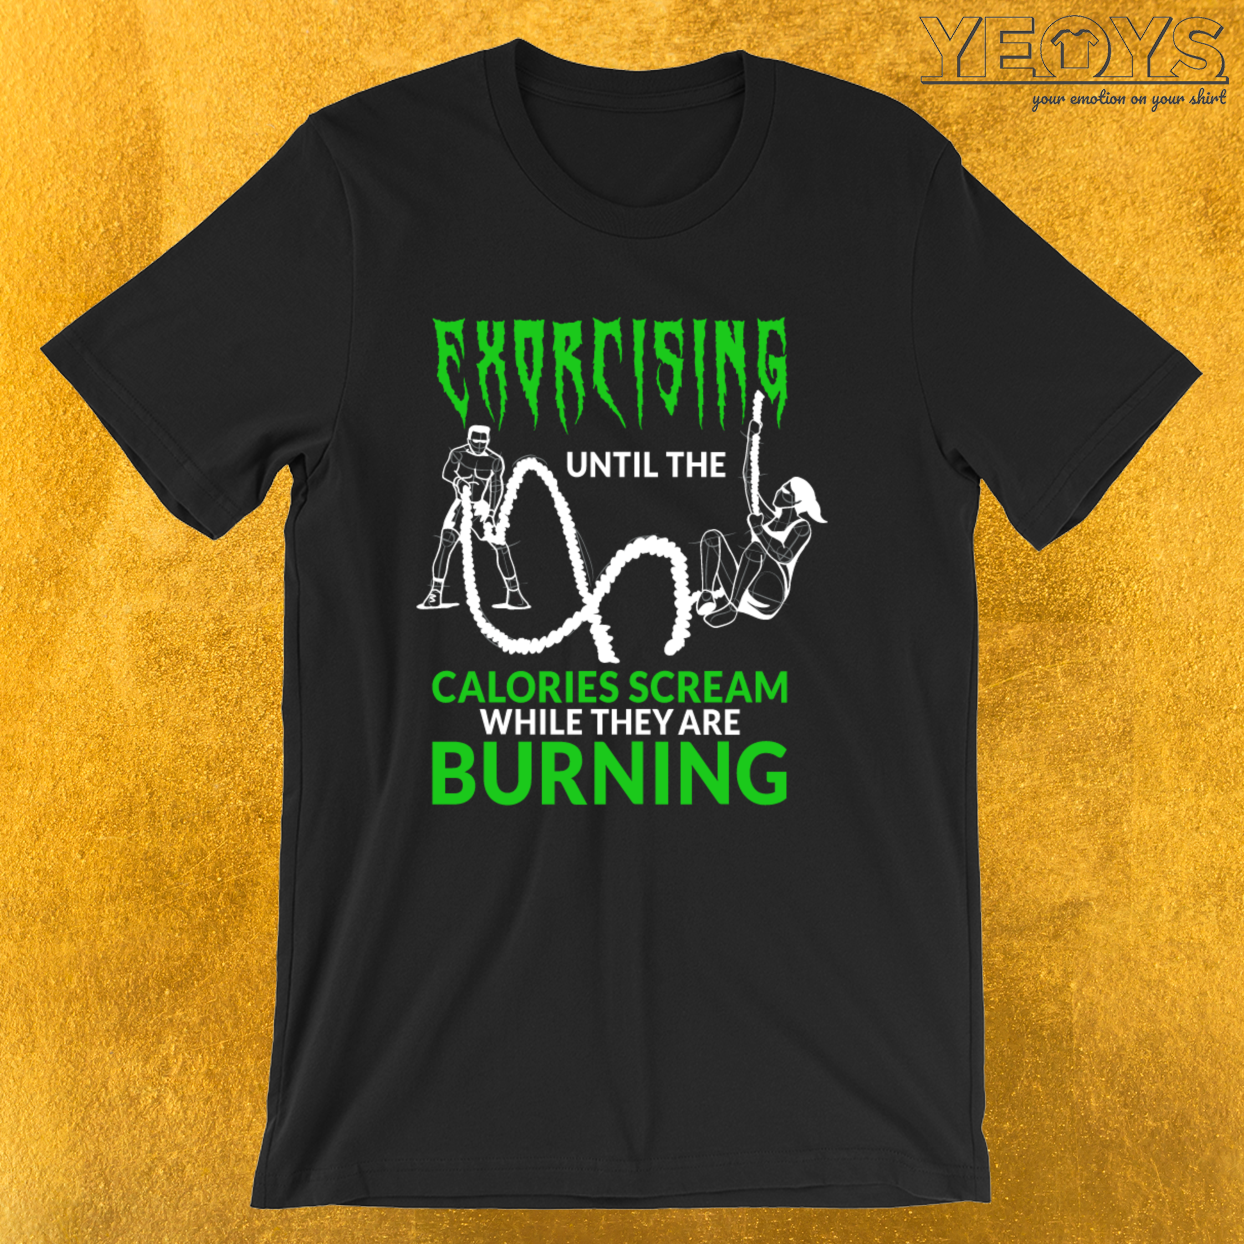 Exorcising Until The Calories Scream – Cardio Tee